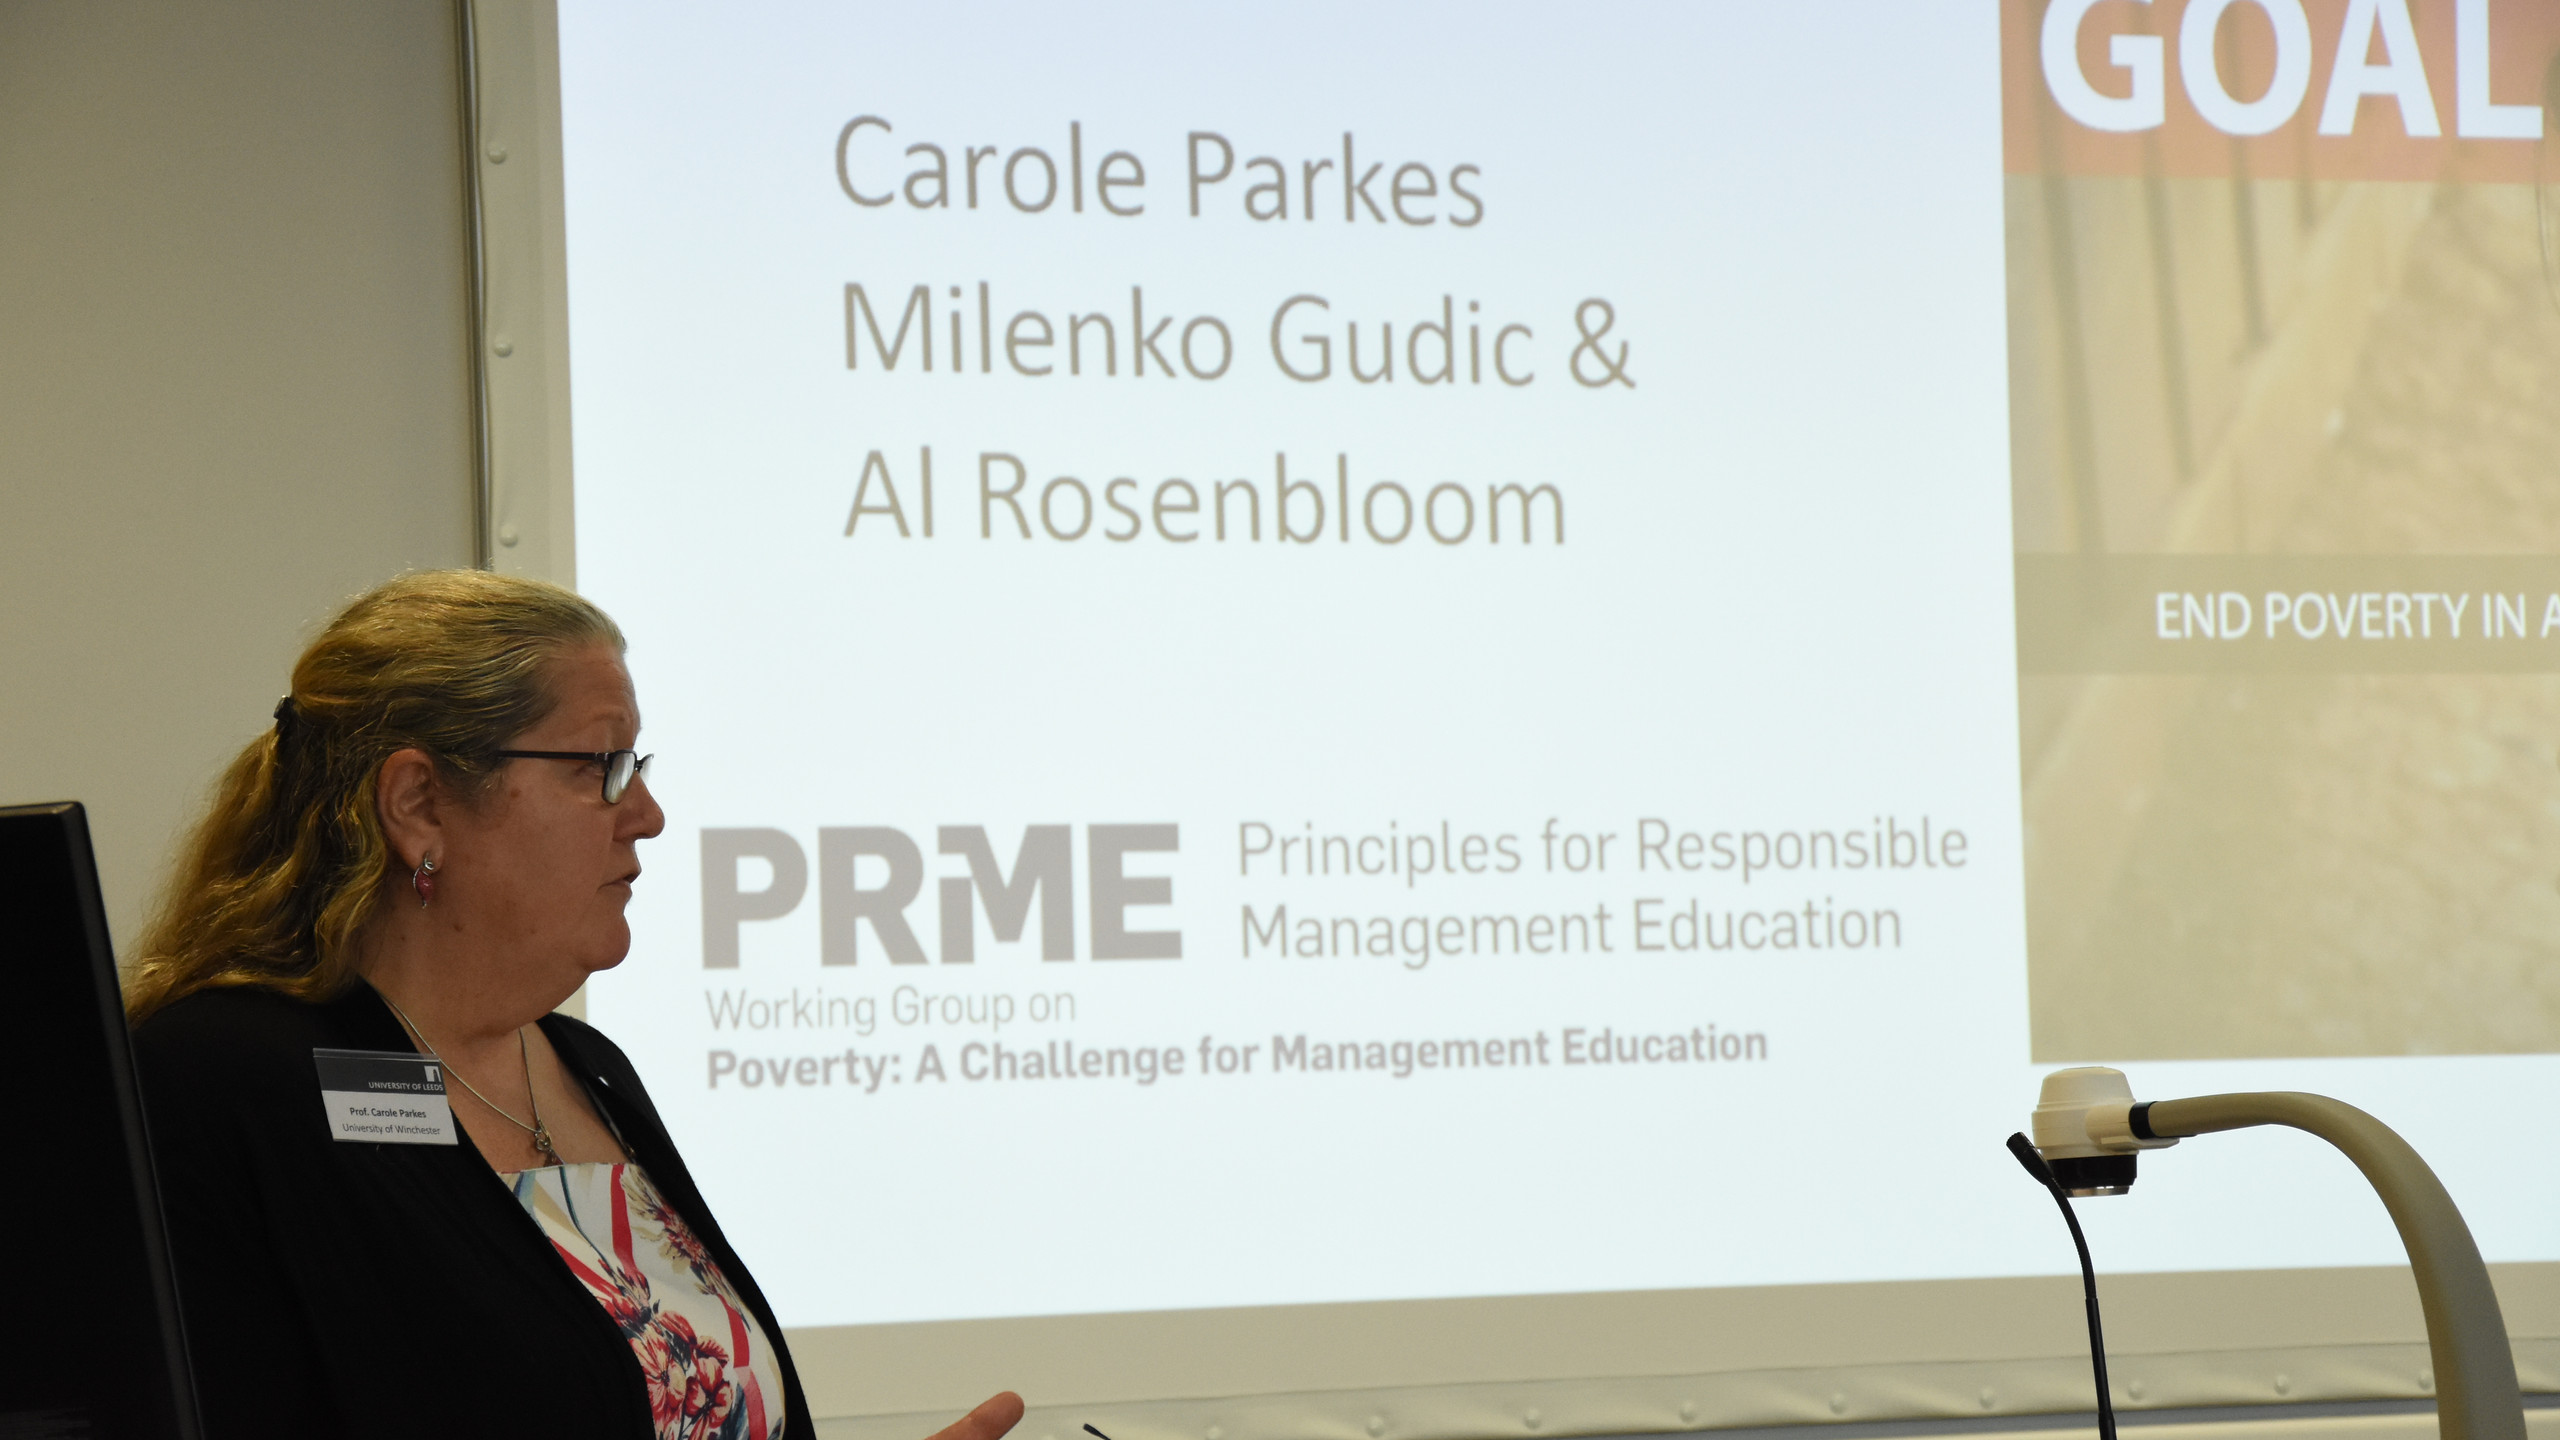 prme-conference-july-2019_48315616842_o.